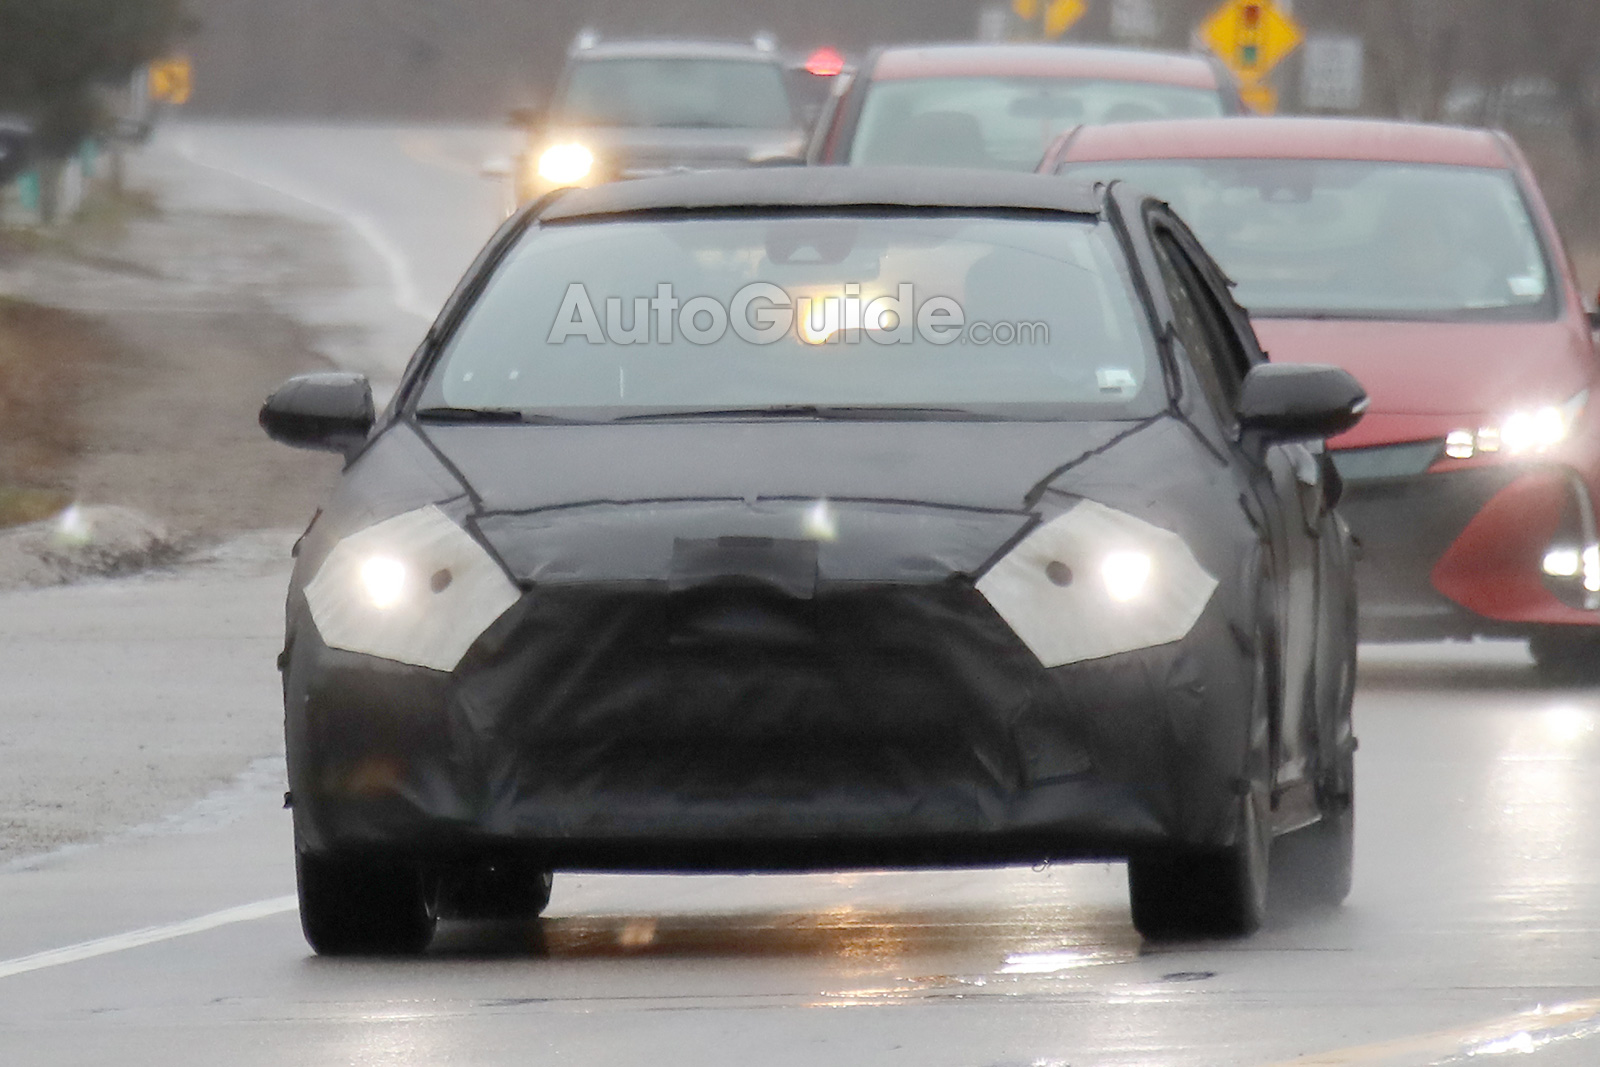 2020 Toyota Corolla Spied Testing for the First Time » AutoGuide.com News